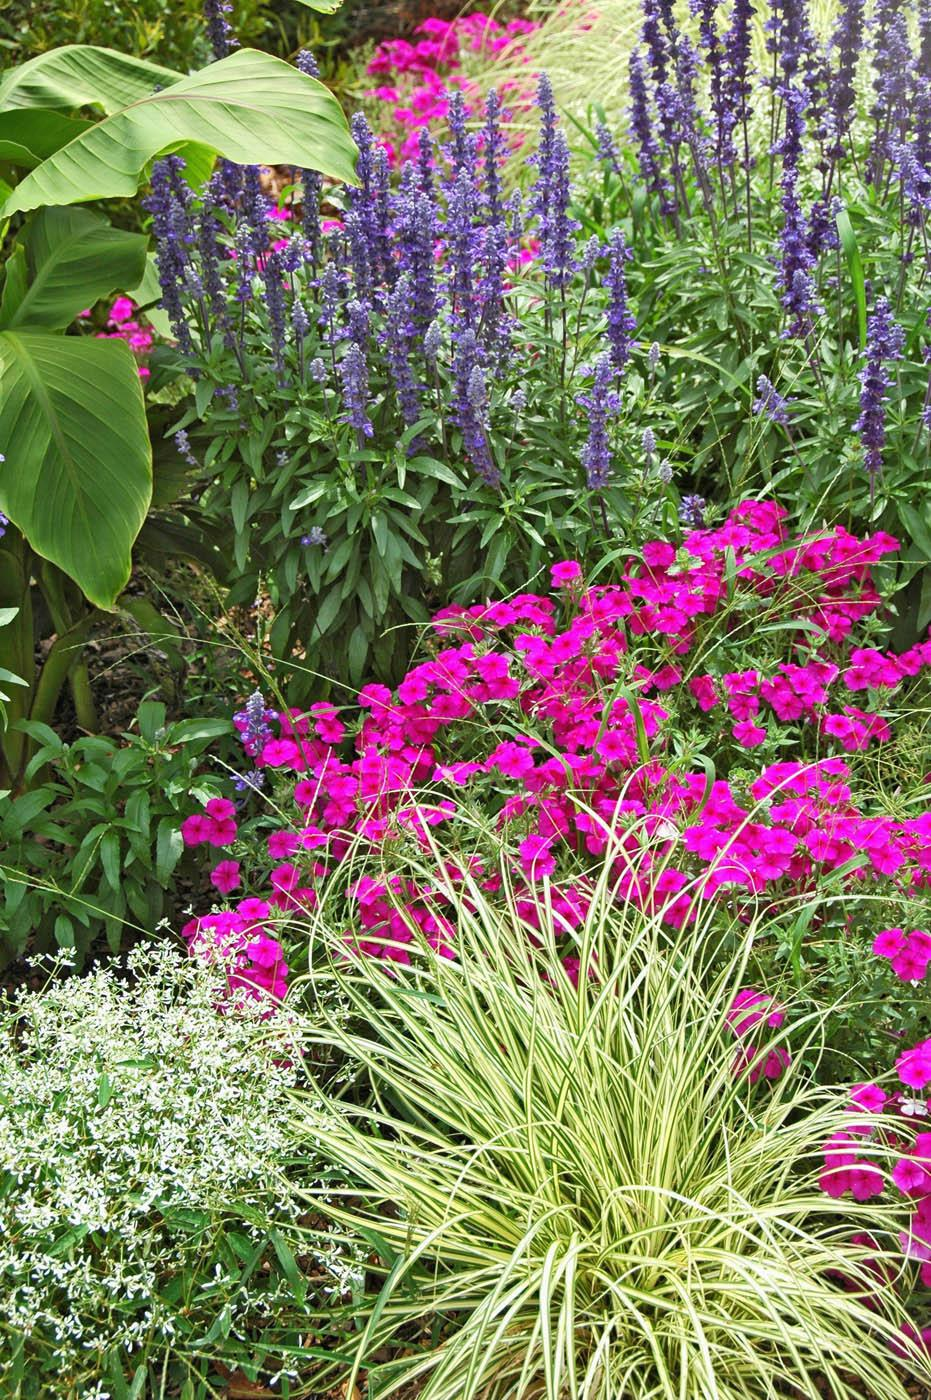 This garden offers an almost endless supply of ideas for 2008 plant options. Beginning with the plants closest to the camera, enjoy the combinations of Diamond Frost euphorbia, Evergold sedge, Intensia Neon Pink phlox, Victoria Blue salvia and Red Abyssinian banana.